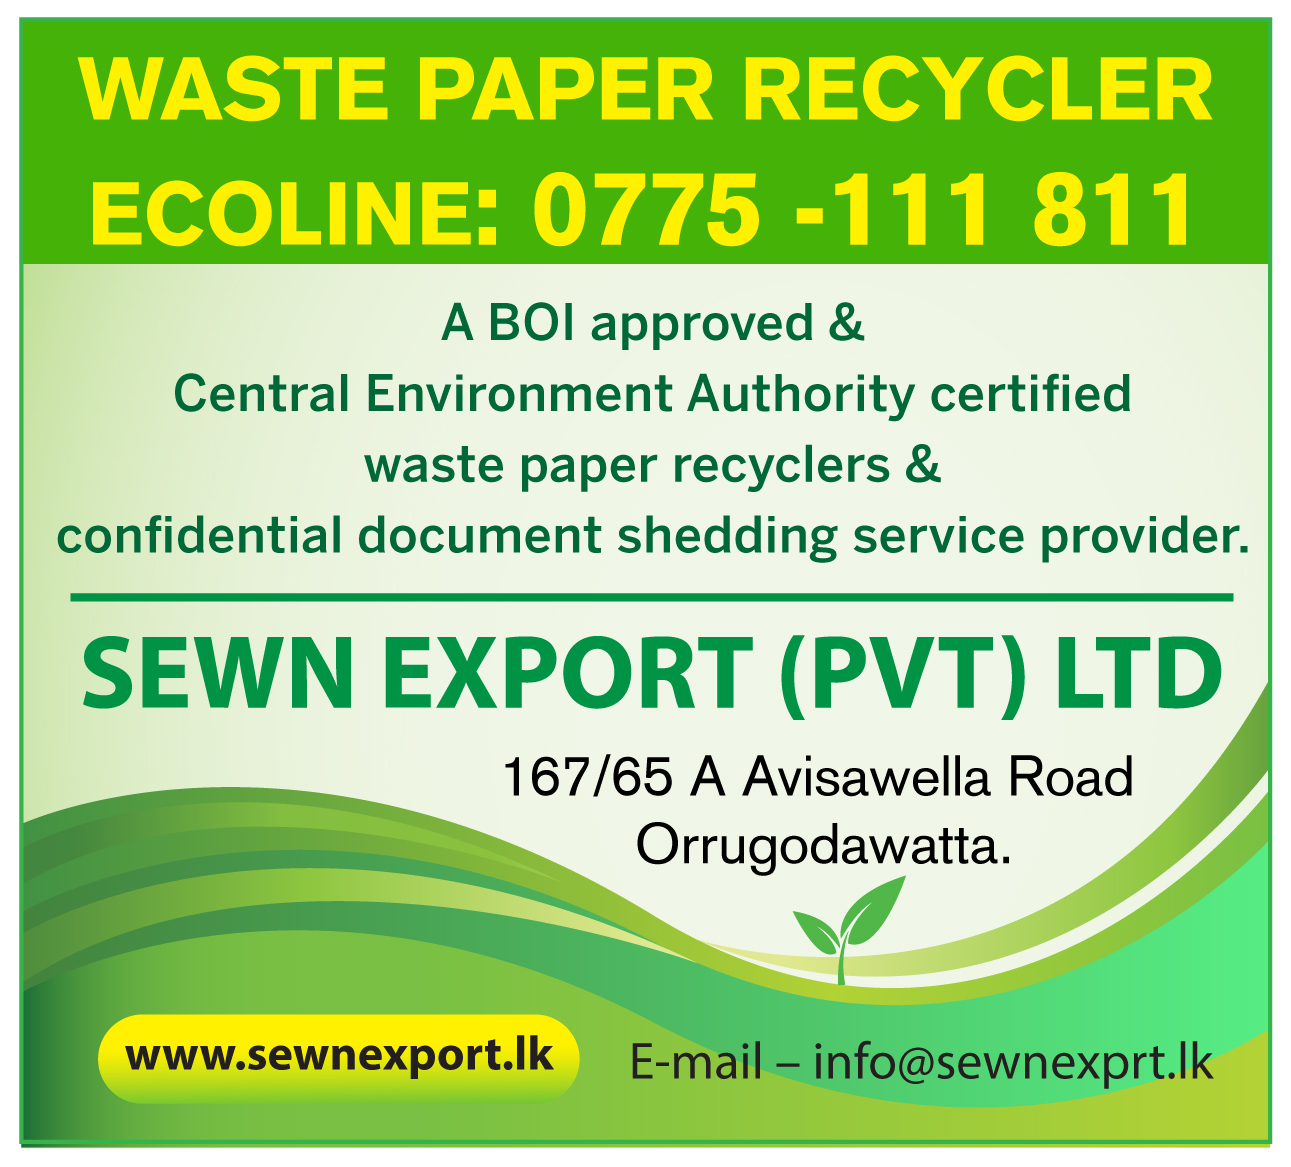 Recycling Centres - Sewn Export (Pvt) Ltd